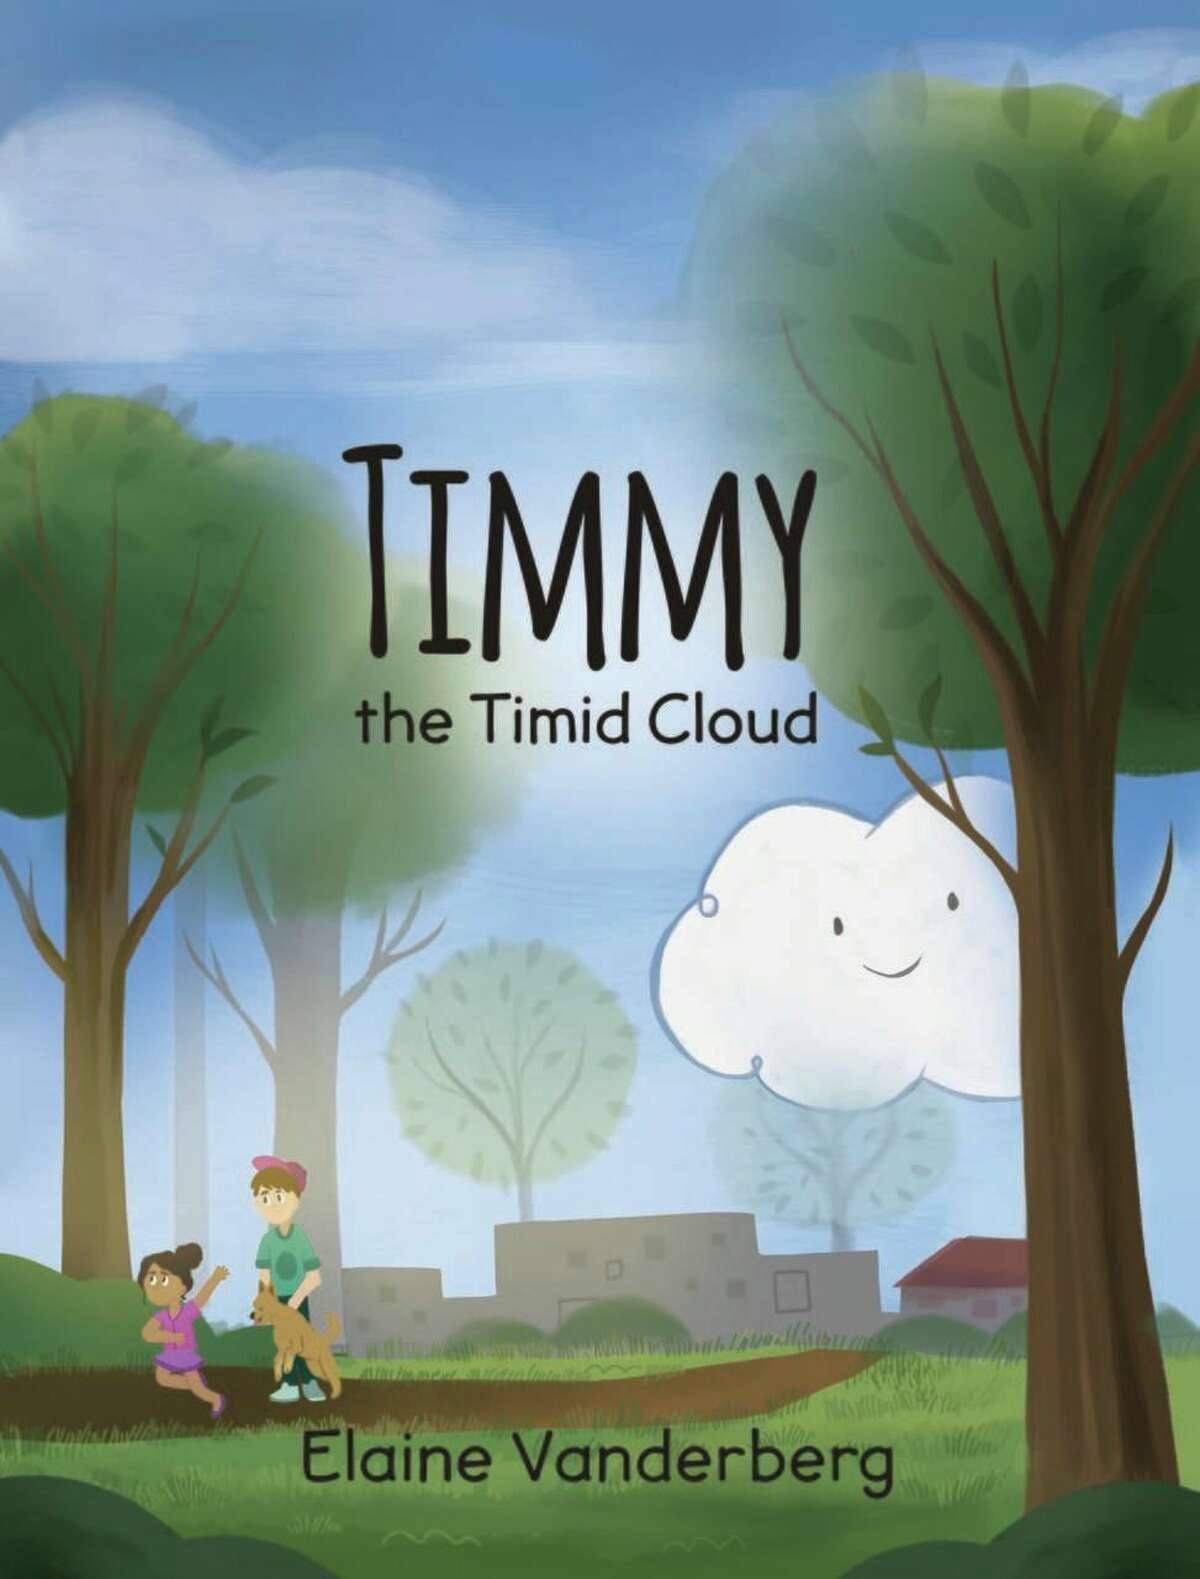 """Elaine Vanderberg's """"Timmy the Timid Cloud"""" is the first book to see print in a series she's written about characters overcoming challenges children may face. (Courtesy Photo)"""